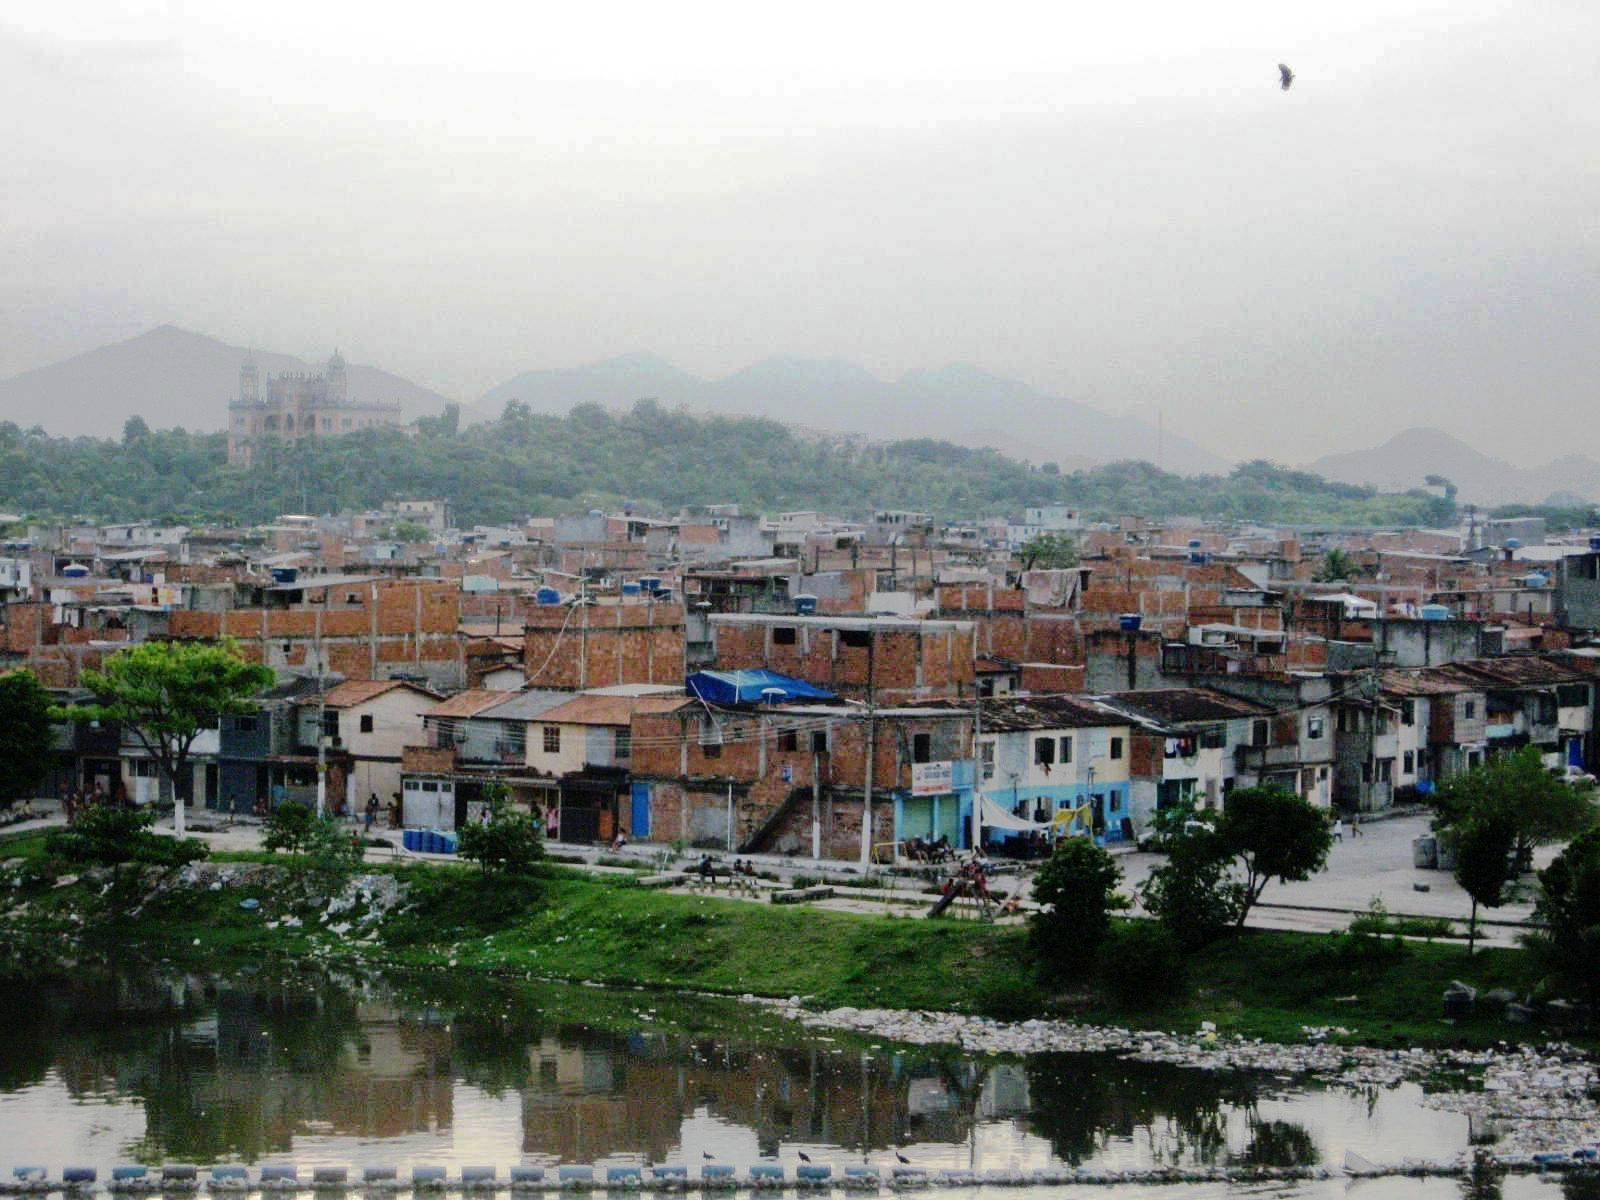 Pluralism in a favela: A story of violence and evangelicalism